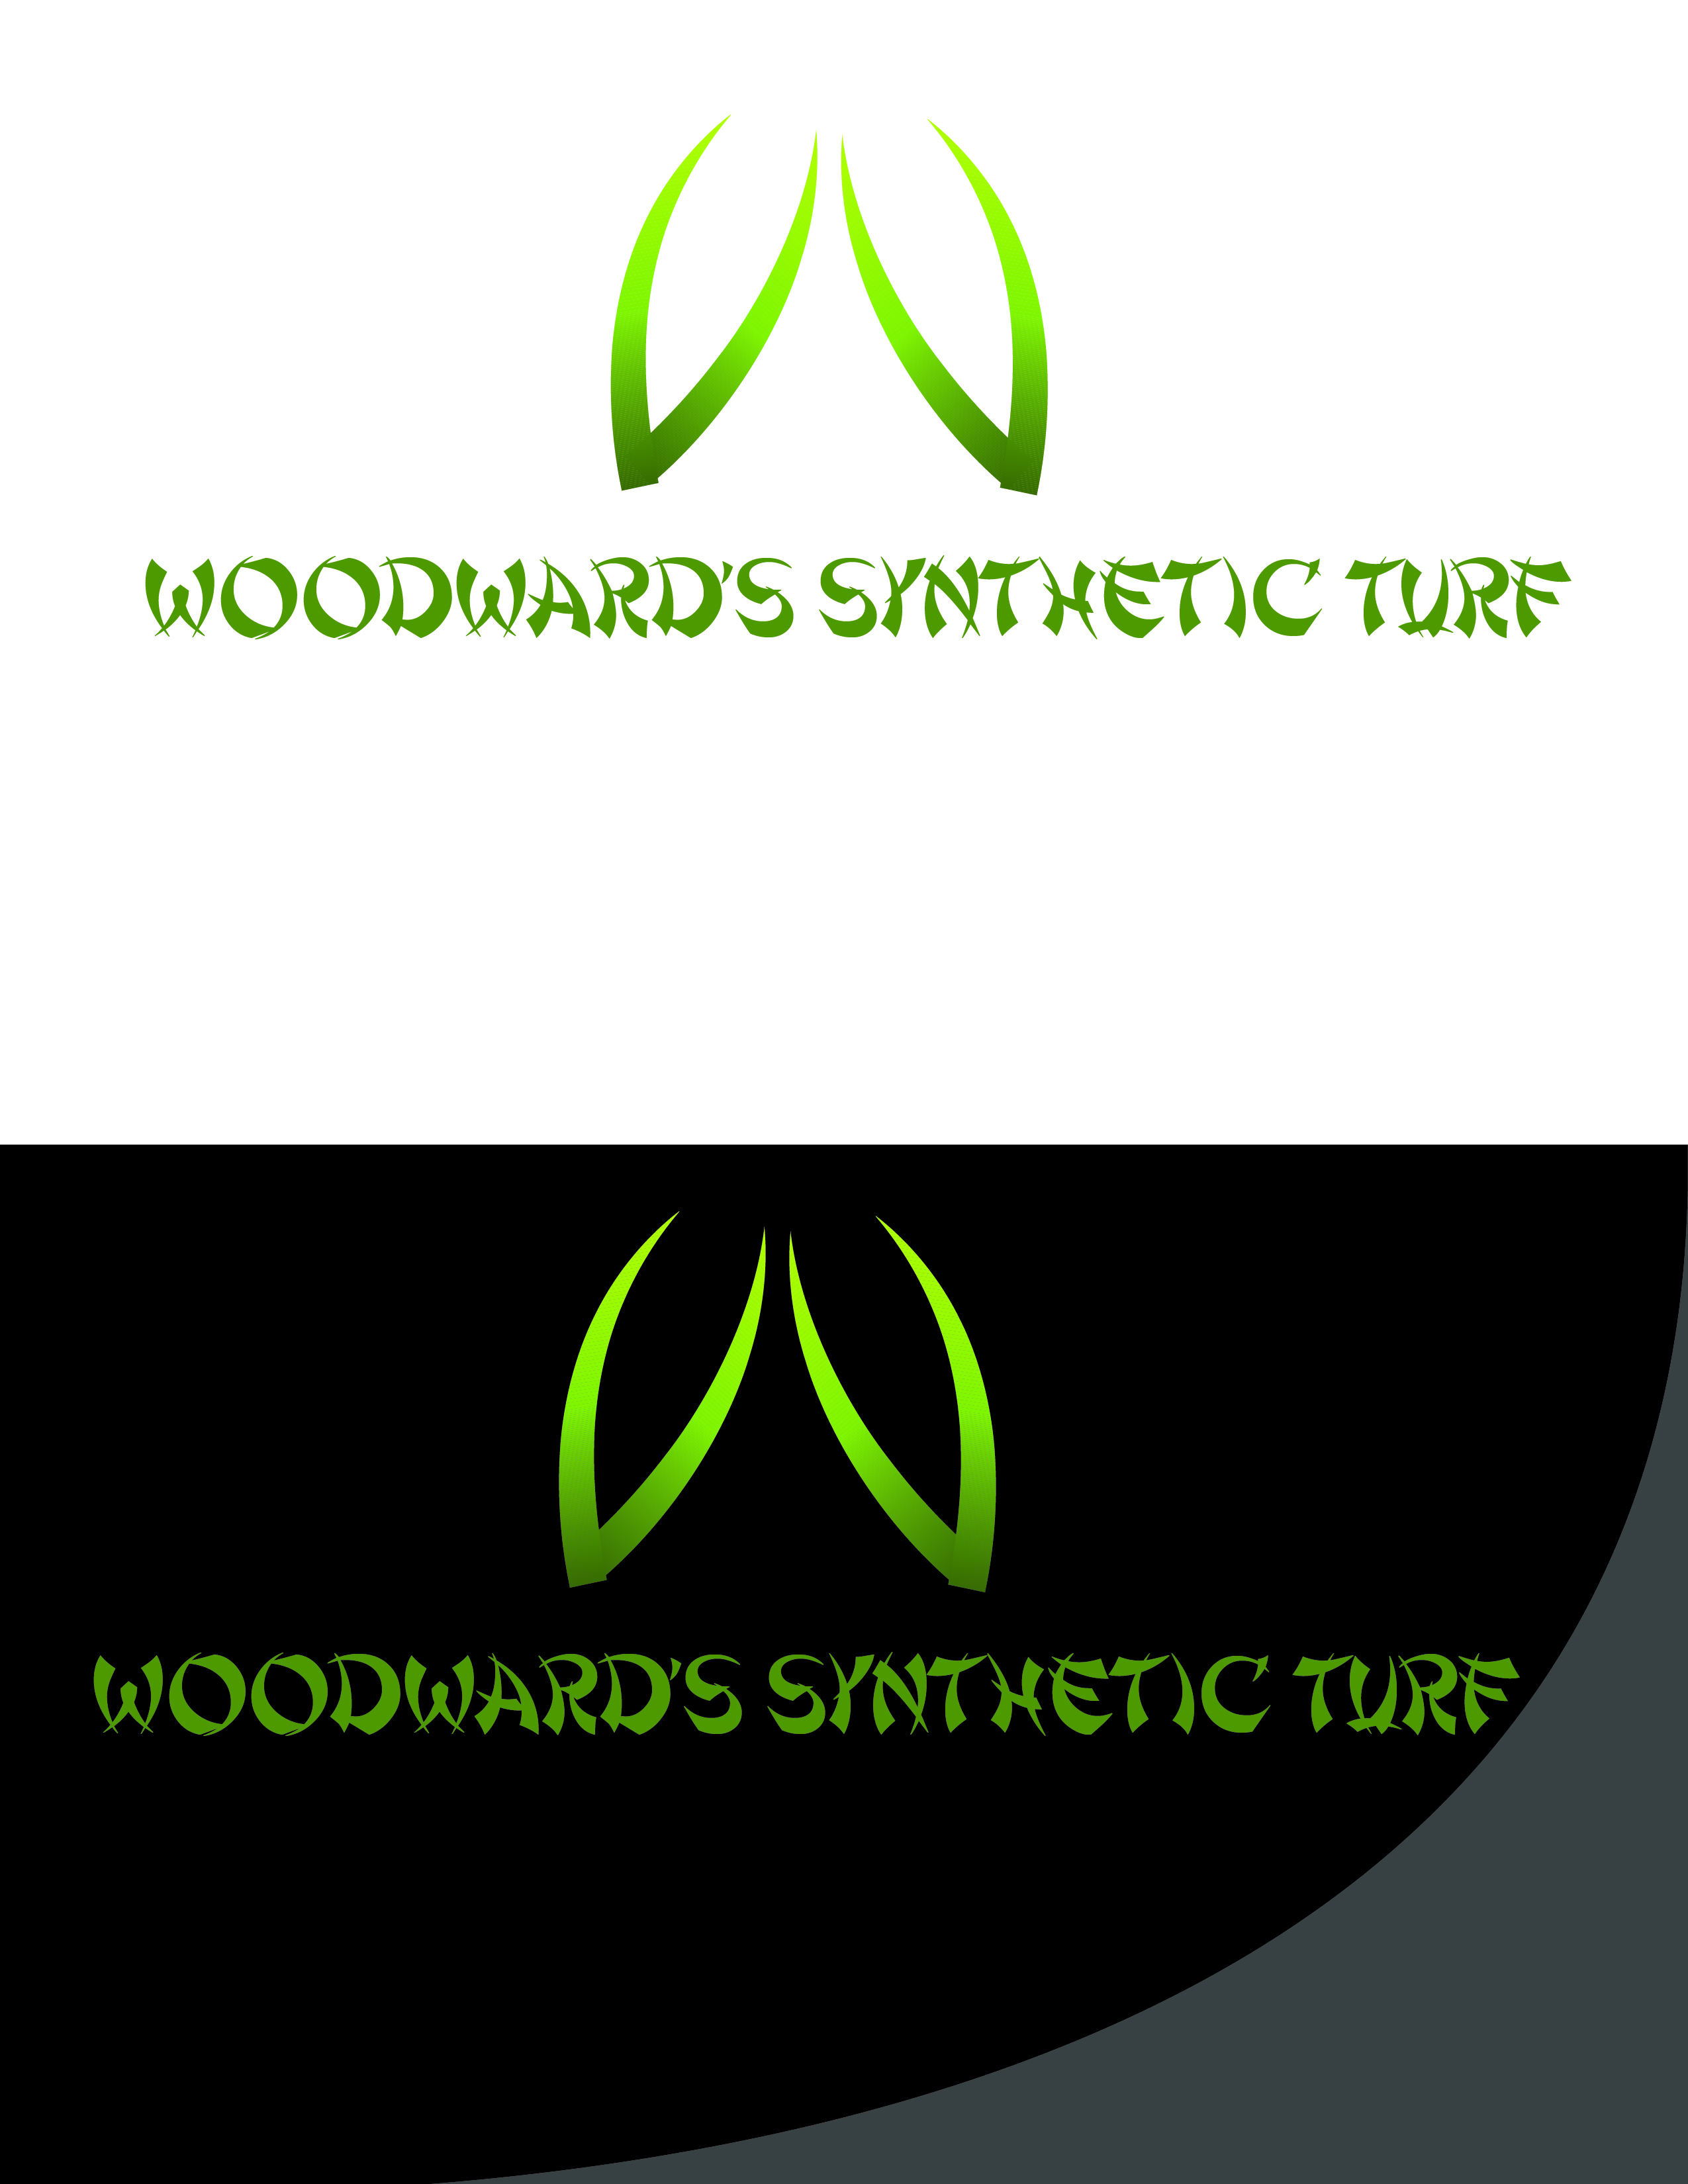 Logo Design by AQIB SHAIKH - Entry No. 30 in the Logo Design Contest Artistic Logo Design for Woodward's Synthetic Turf.